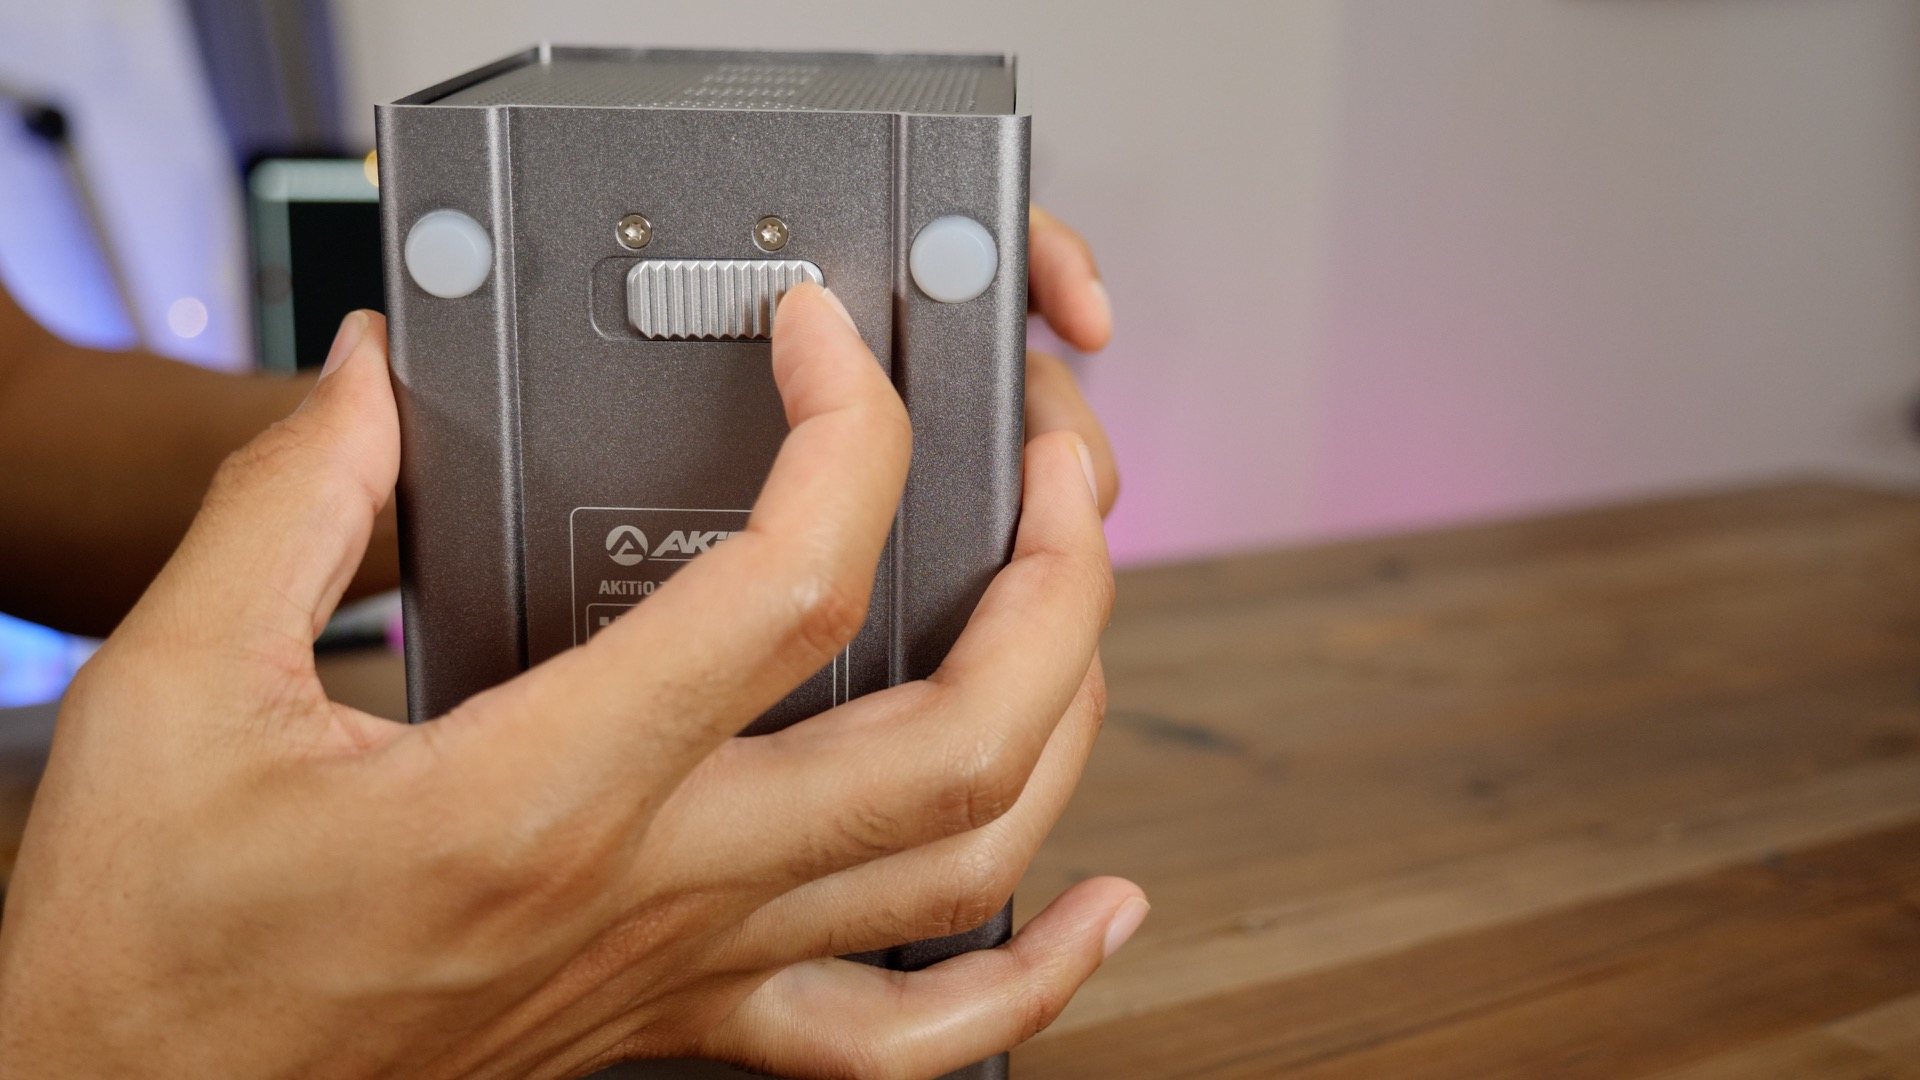 Latch on bottom to access drive door